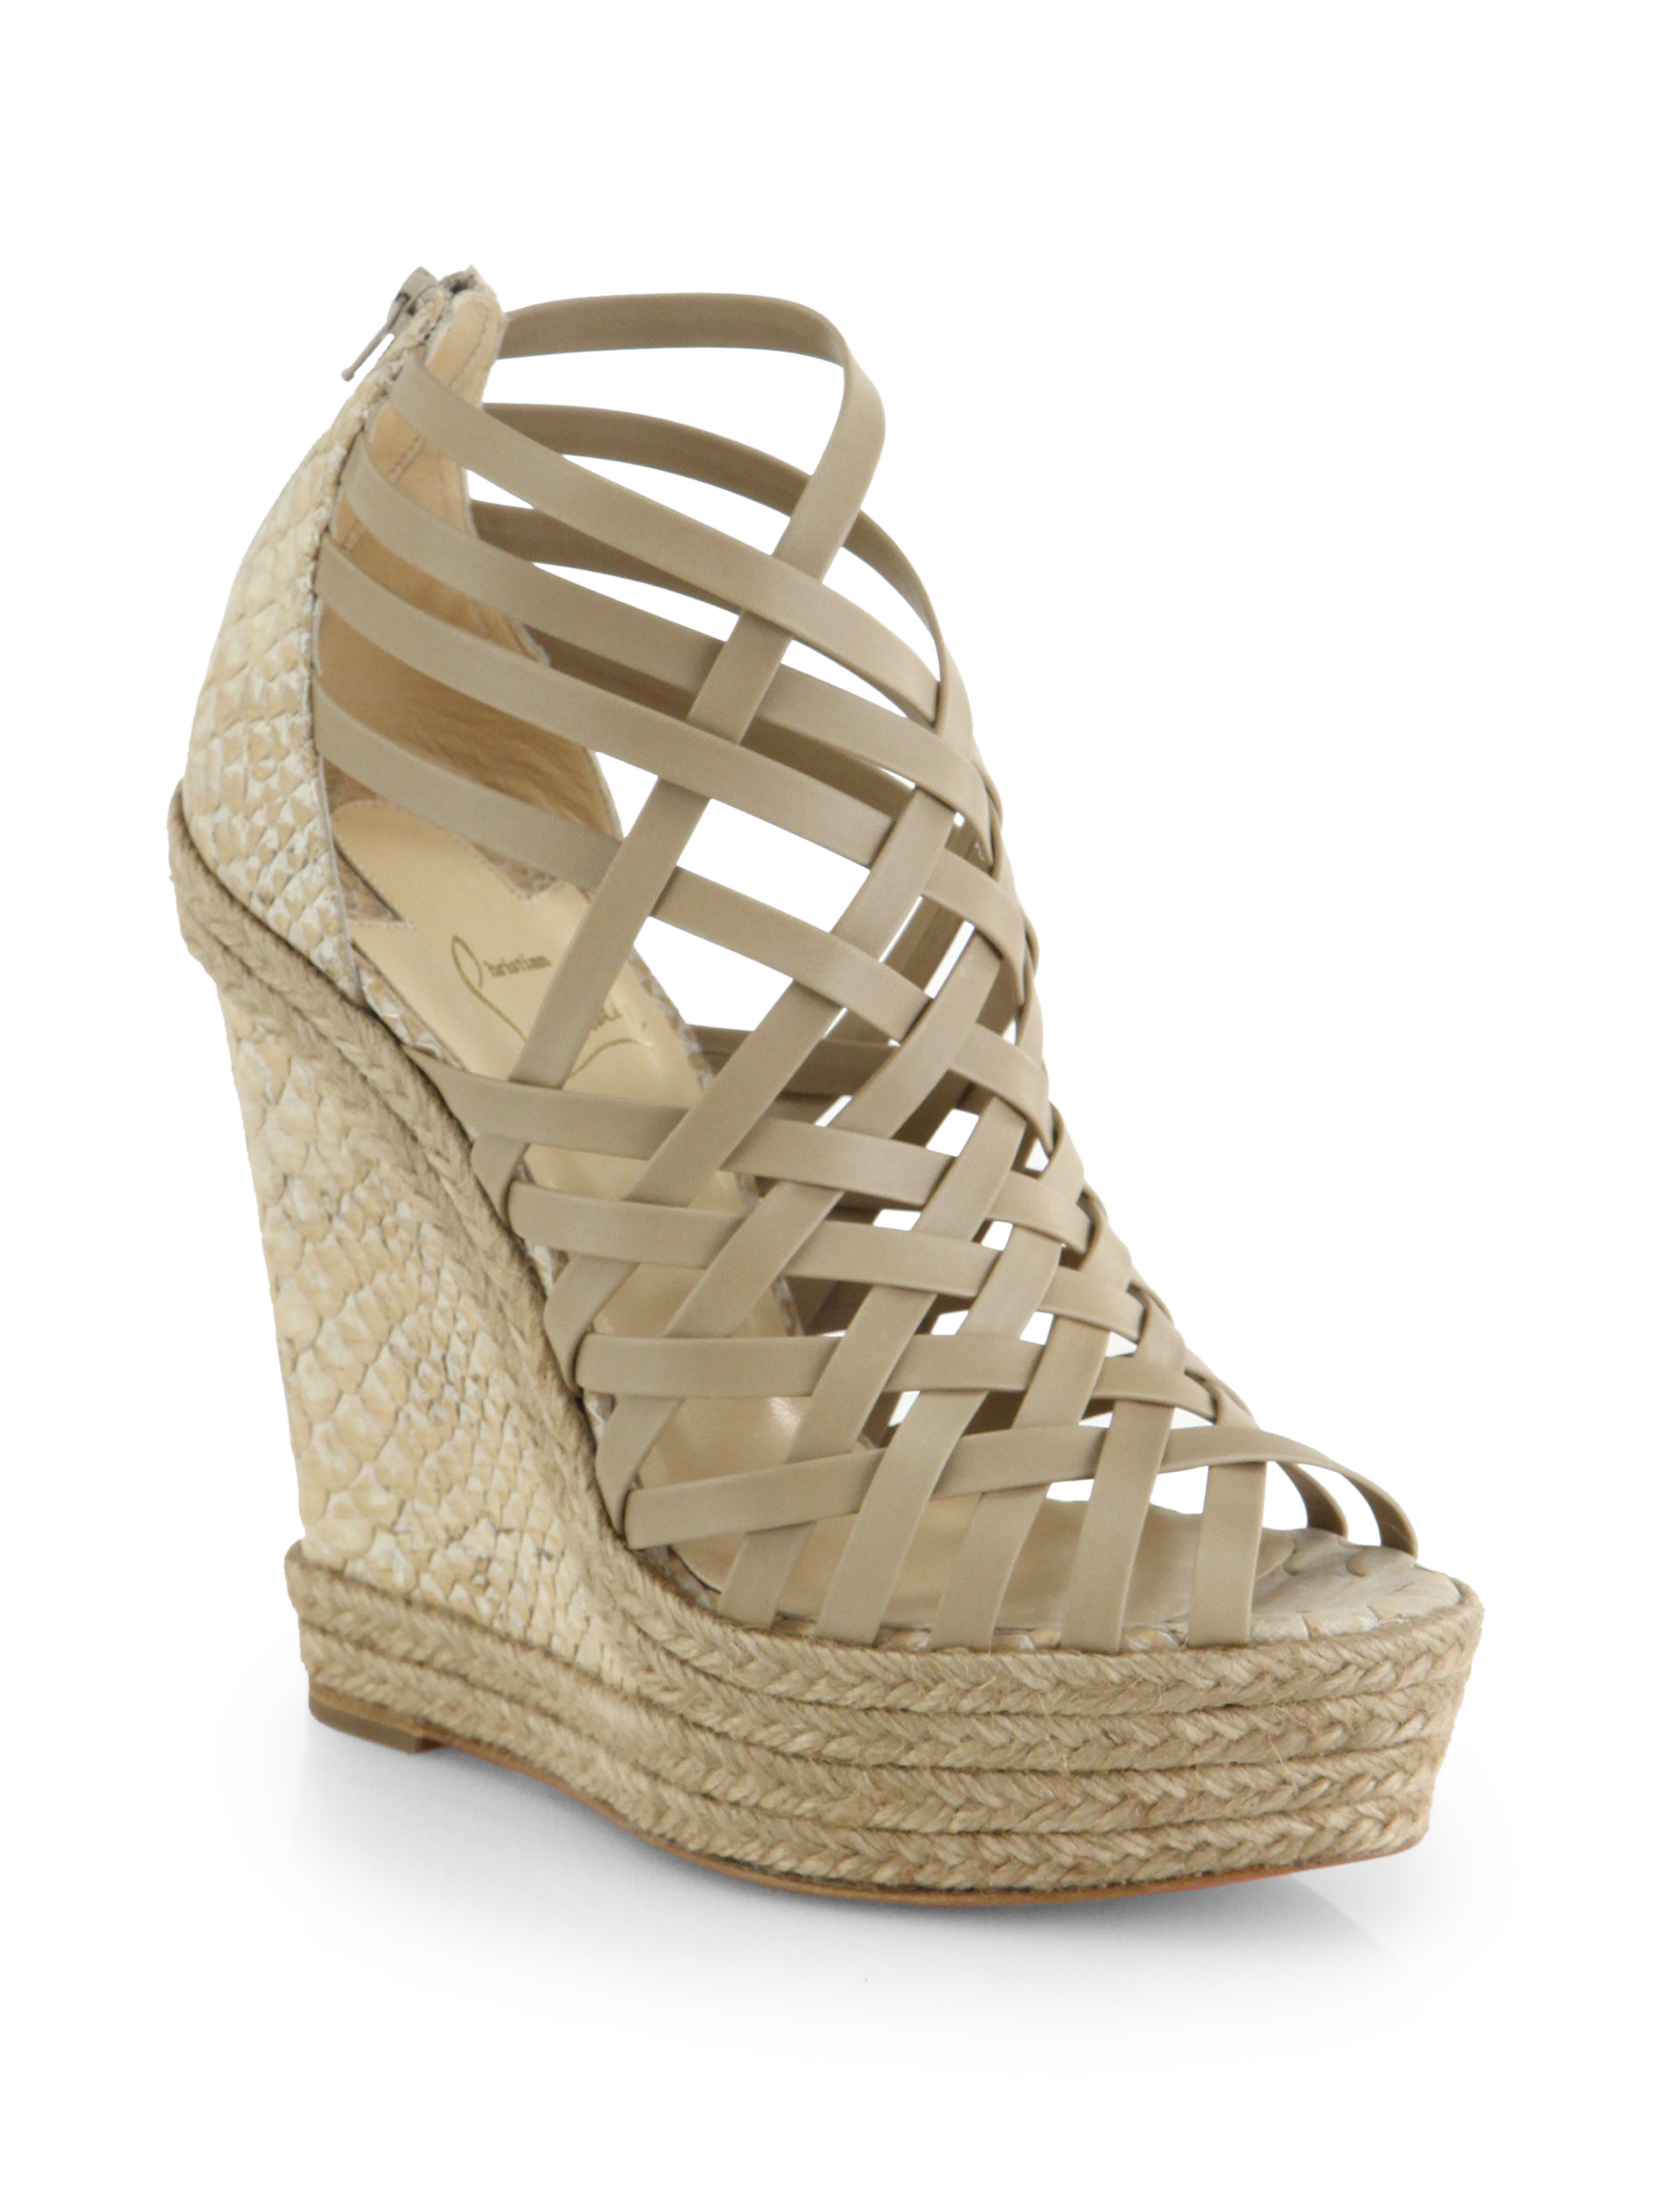 2bd5d4377ec8 ... real lyst christian louboutin tramontagne leather cork wedge sandals in  96f53 ceceb